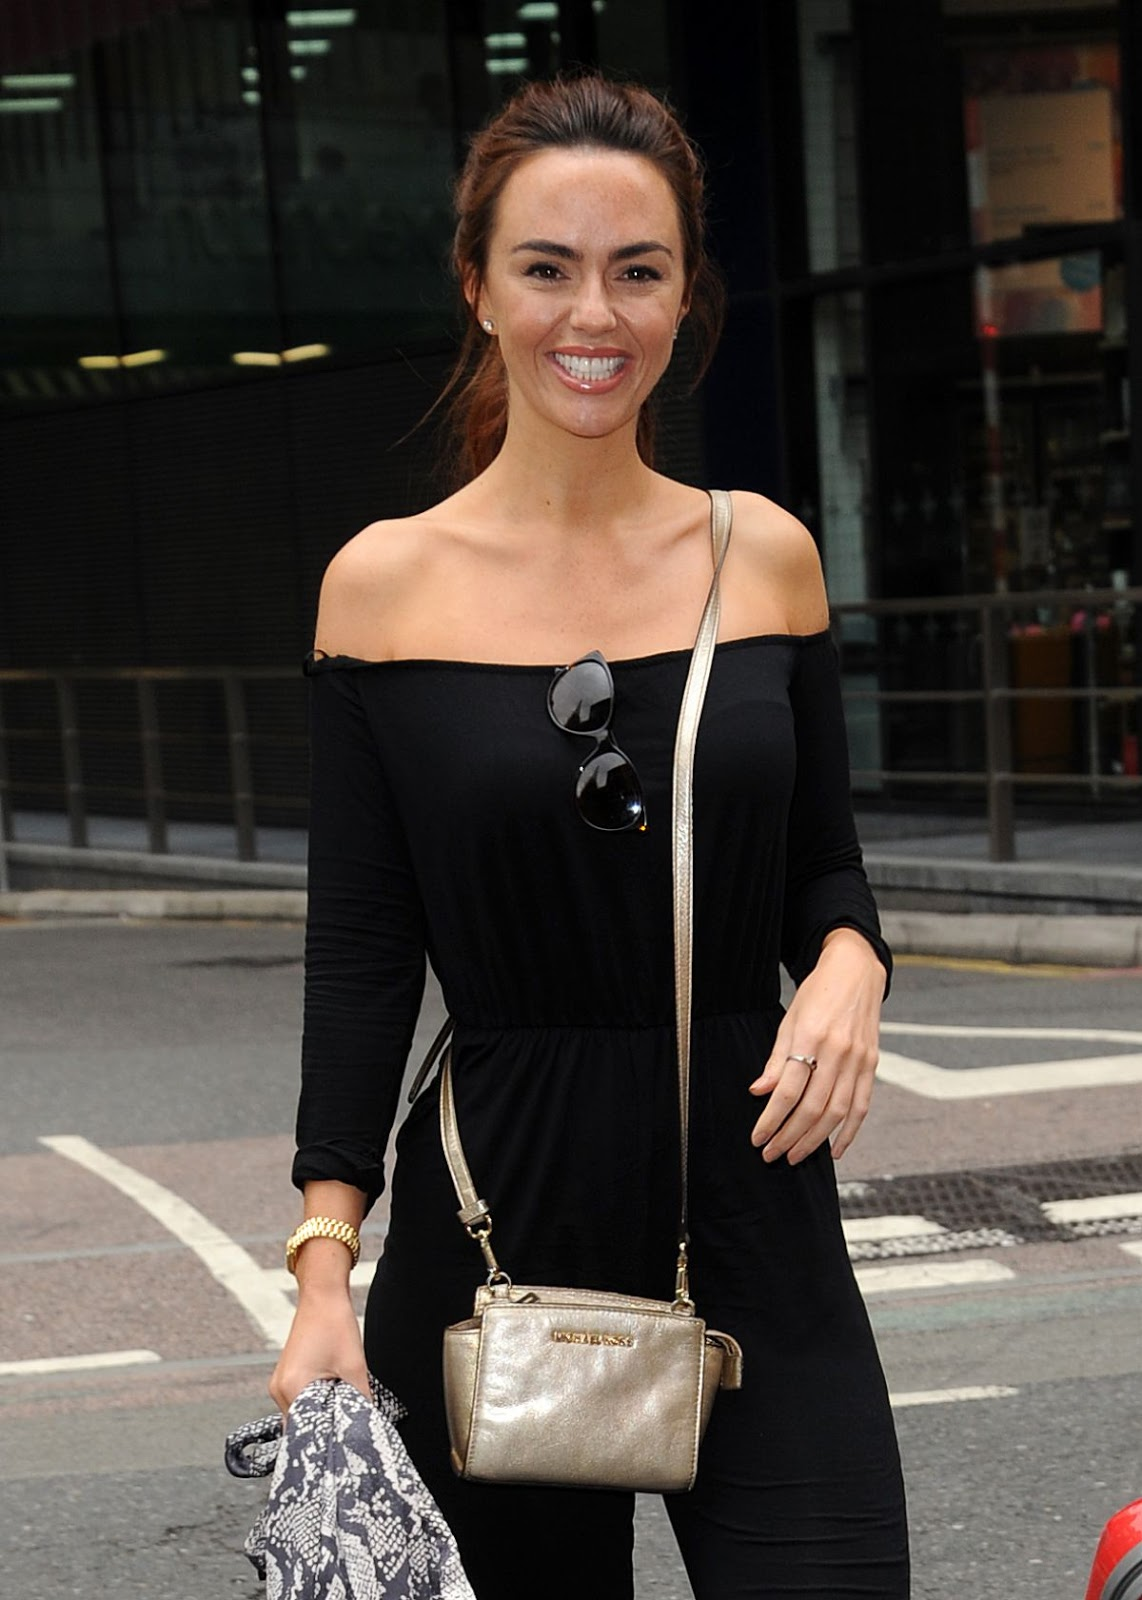 Photos of Jennifer Metcalfe At Walkers Crisps Sarnie Club Launch In London